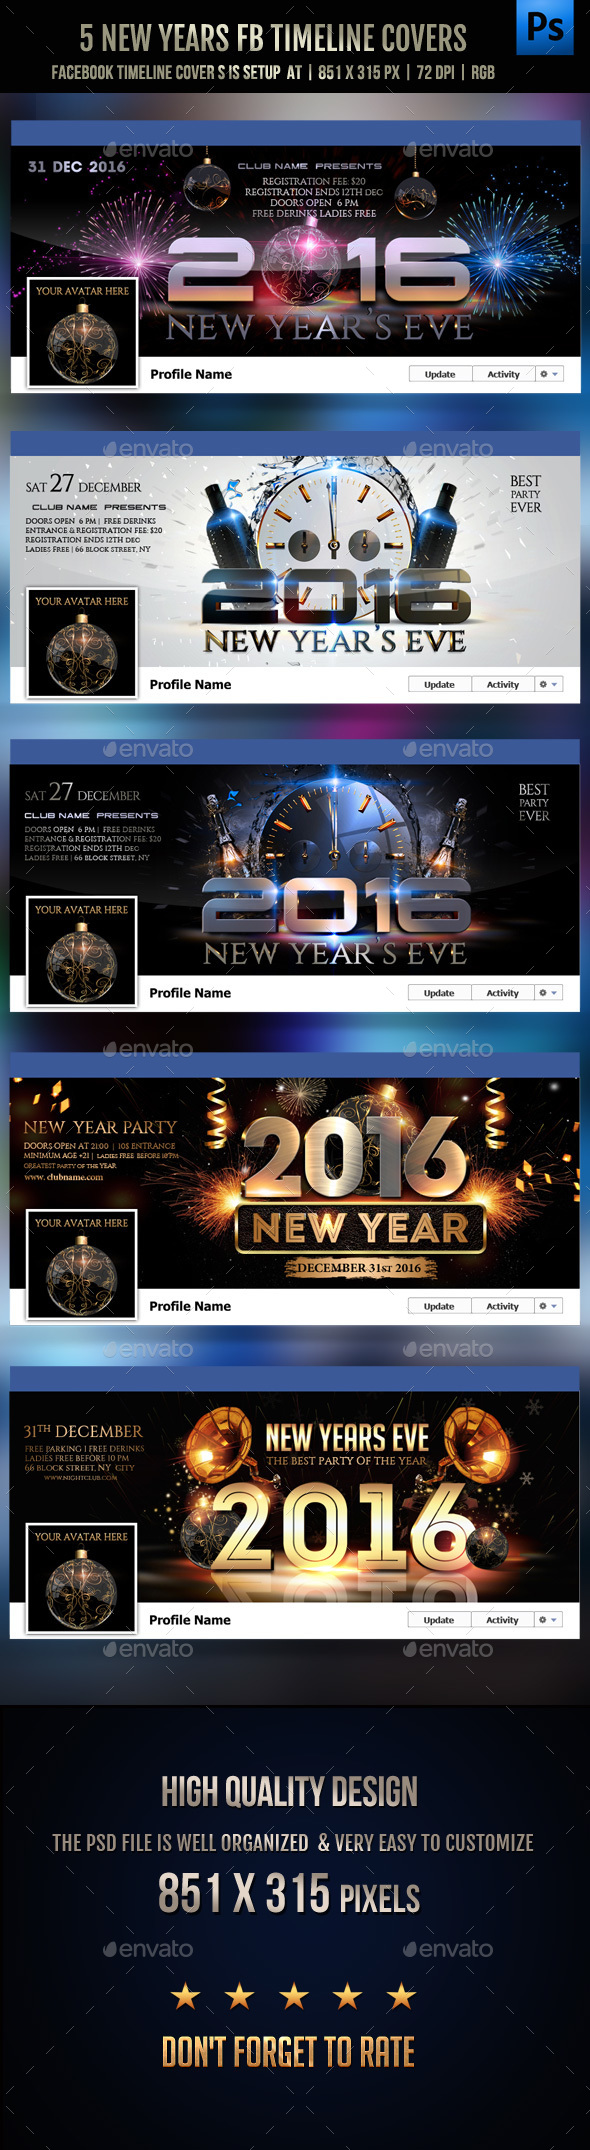 5 New Years Facebook Covers - Facebook Timeline Covers Social Media